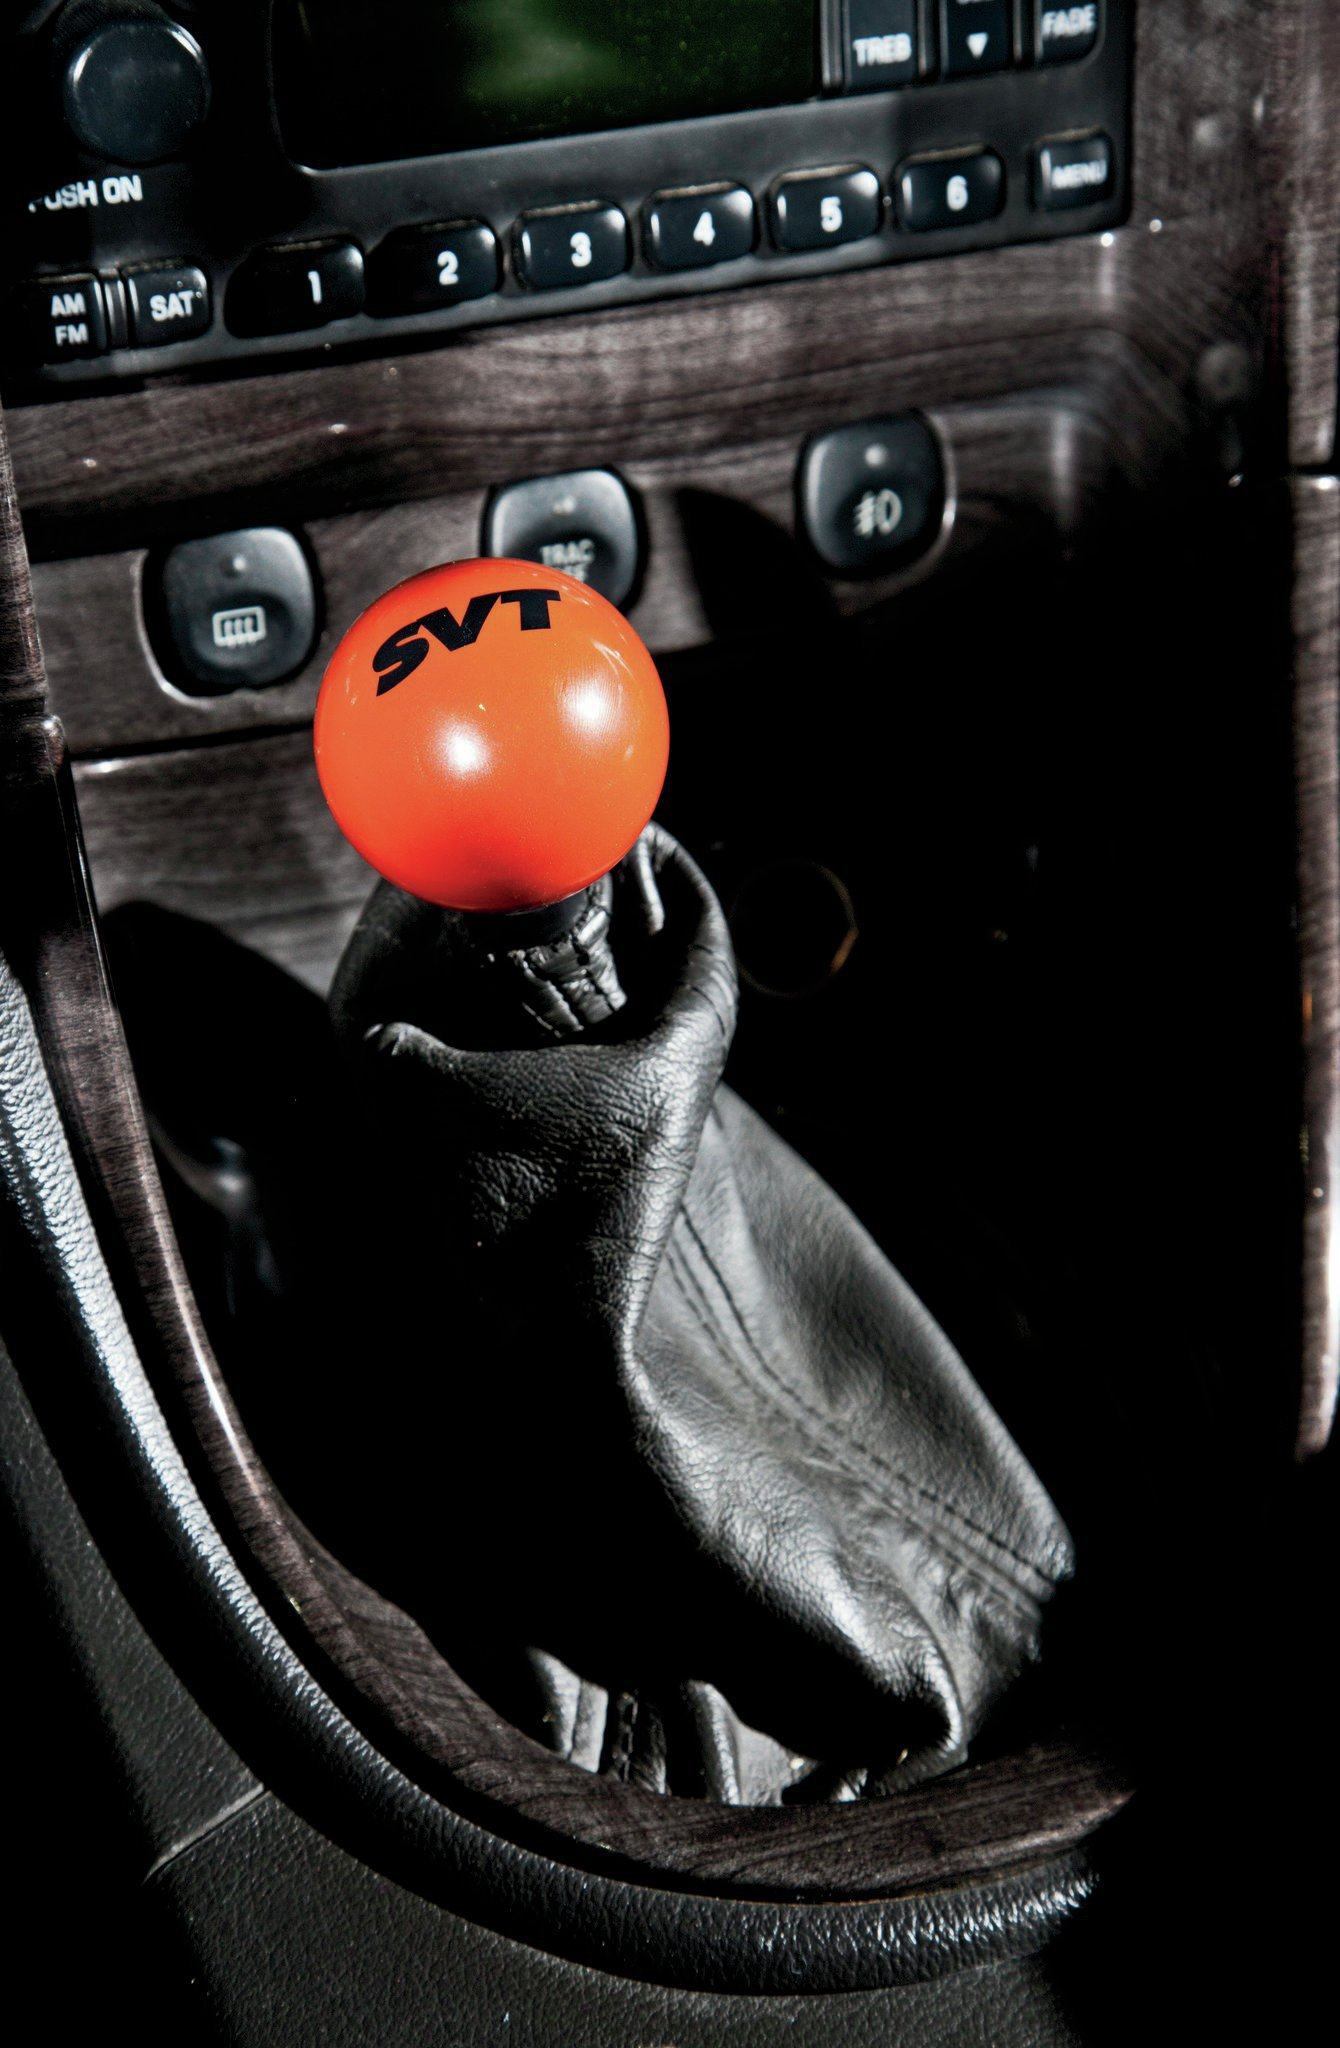 2004 Ford Mustang Cobra Svt Shifter